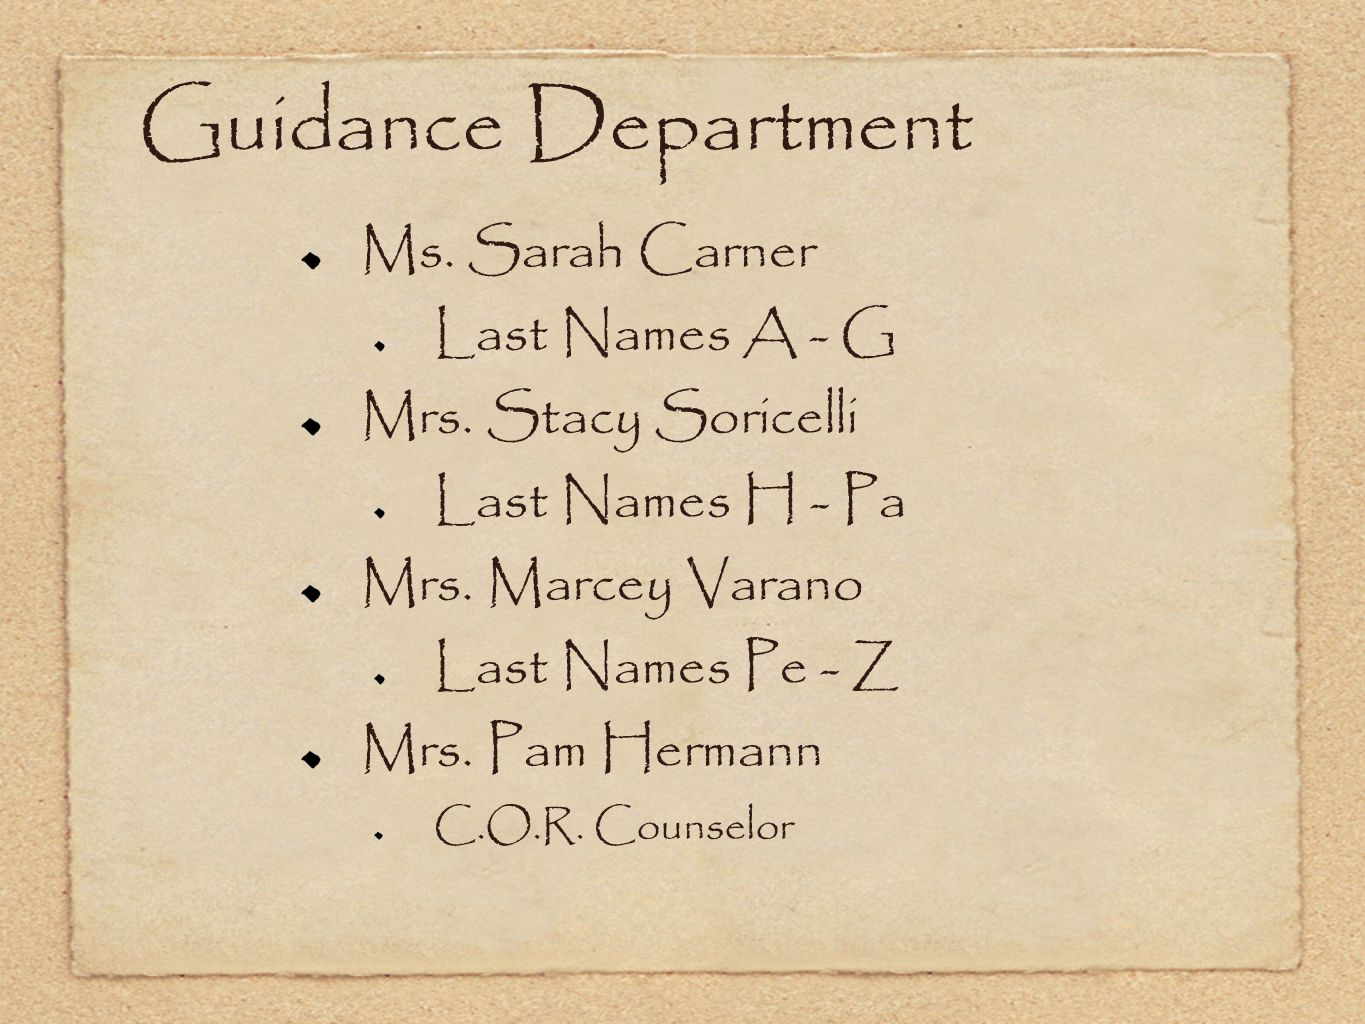 Guidance Department Ms. Sarah Carner Last Names A - G Mrs. Stacy Soricelli Last Names H - Pa Mrs. Marcey Varano Last Names Pe - Z Mrs. Pam Hermann C.O